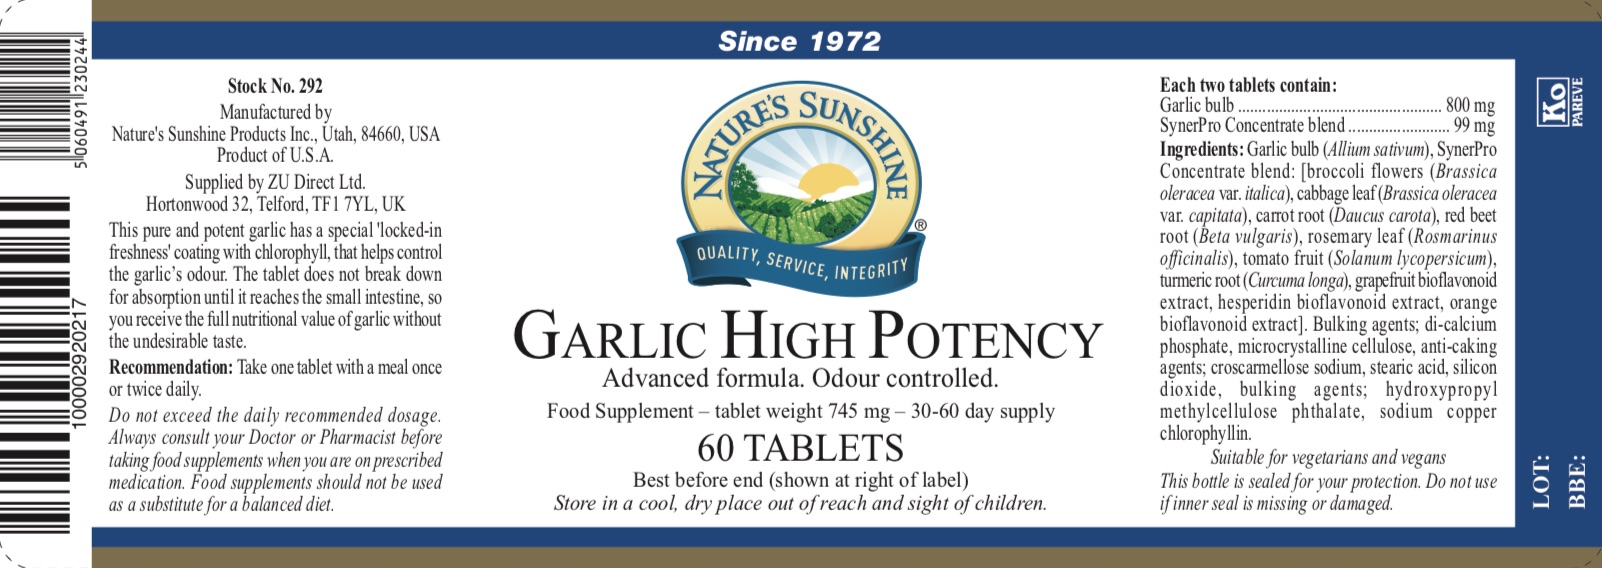 Nature's Sunshine - Garlic High Potency - Label